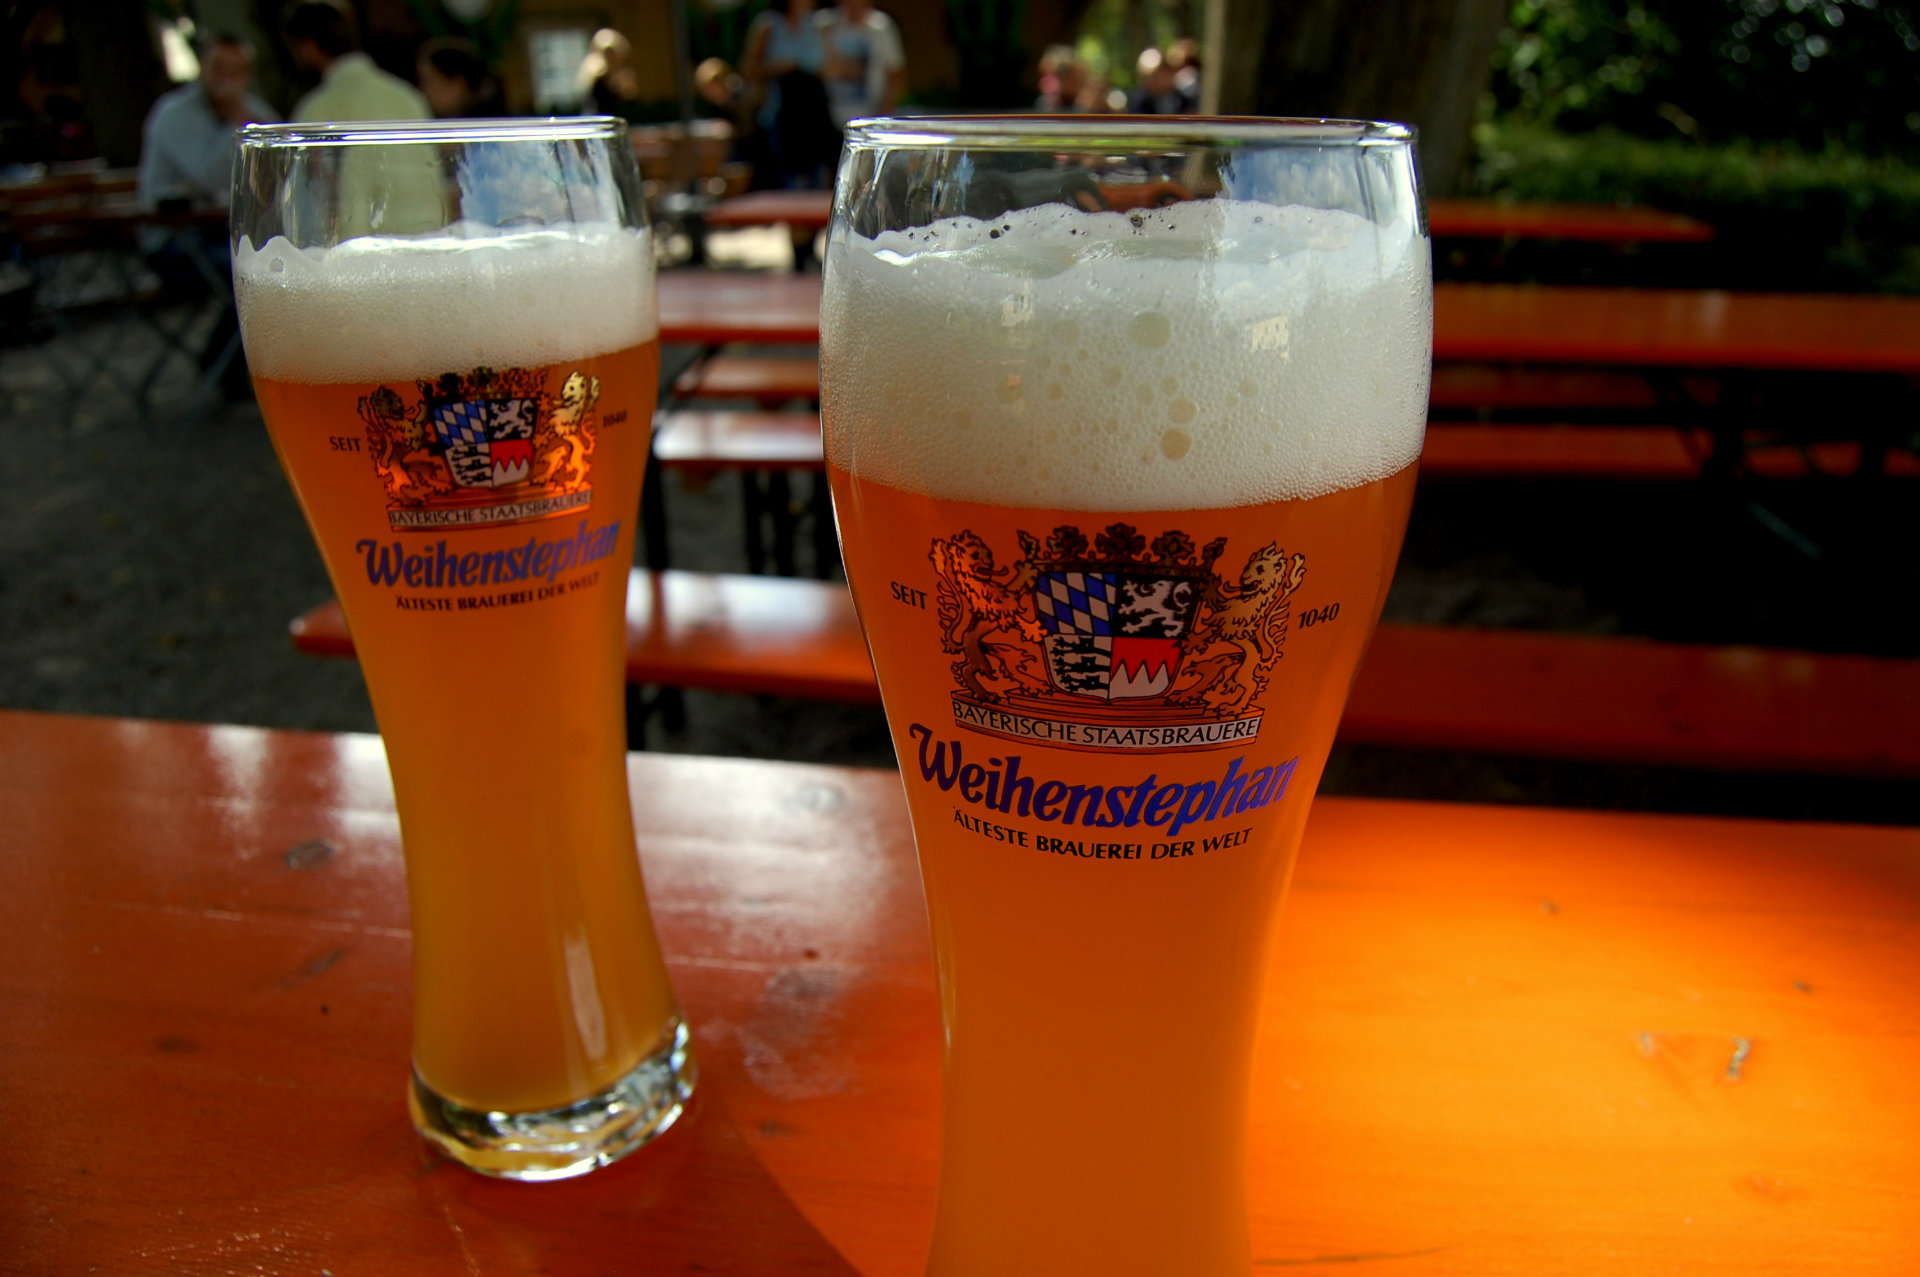 Weihenstephaner brewery